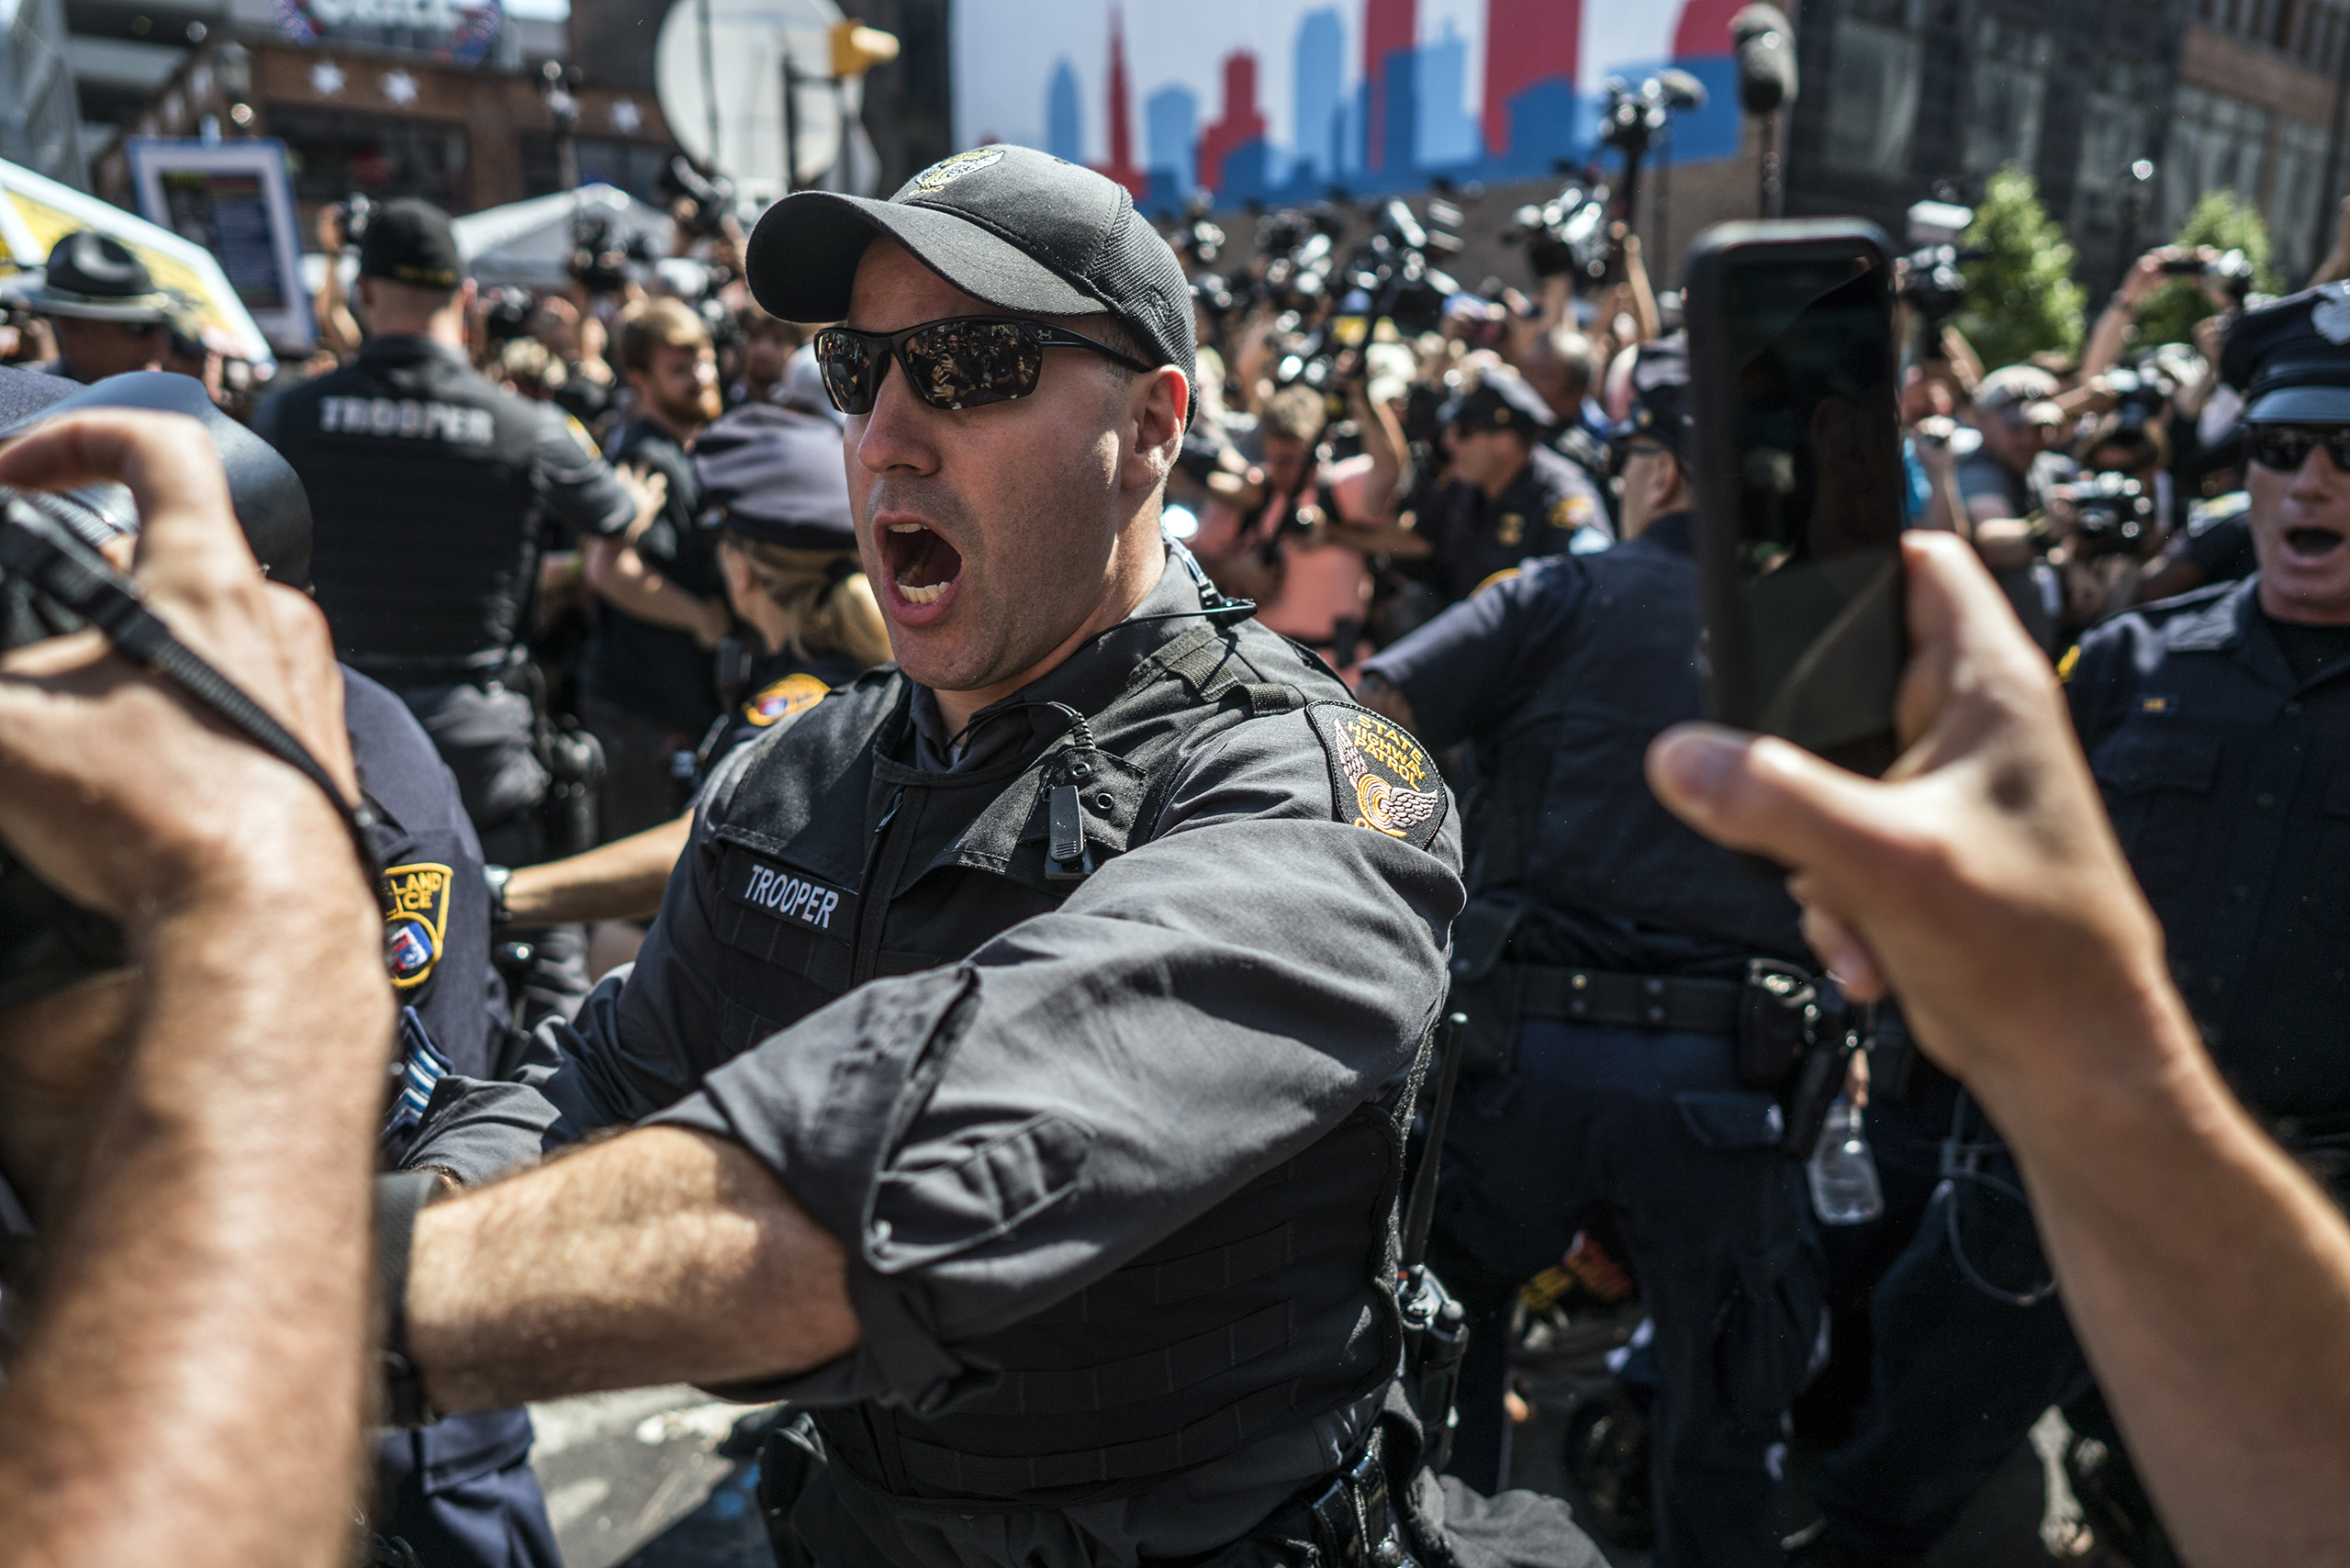 Protesters struggle with law enforcement after trying to burn an American Flag near the sight of the Republican National Convention in downtown Cleveland on the third day of the convention on July 20, 2016 in Cleveland, Ohio.